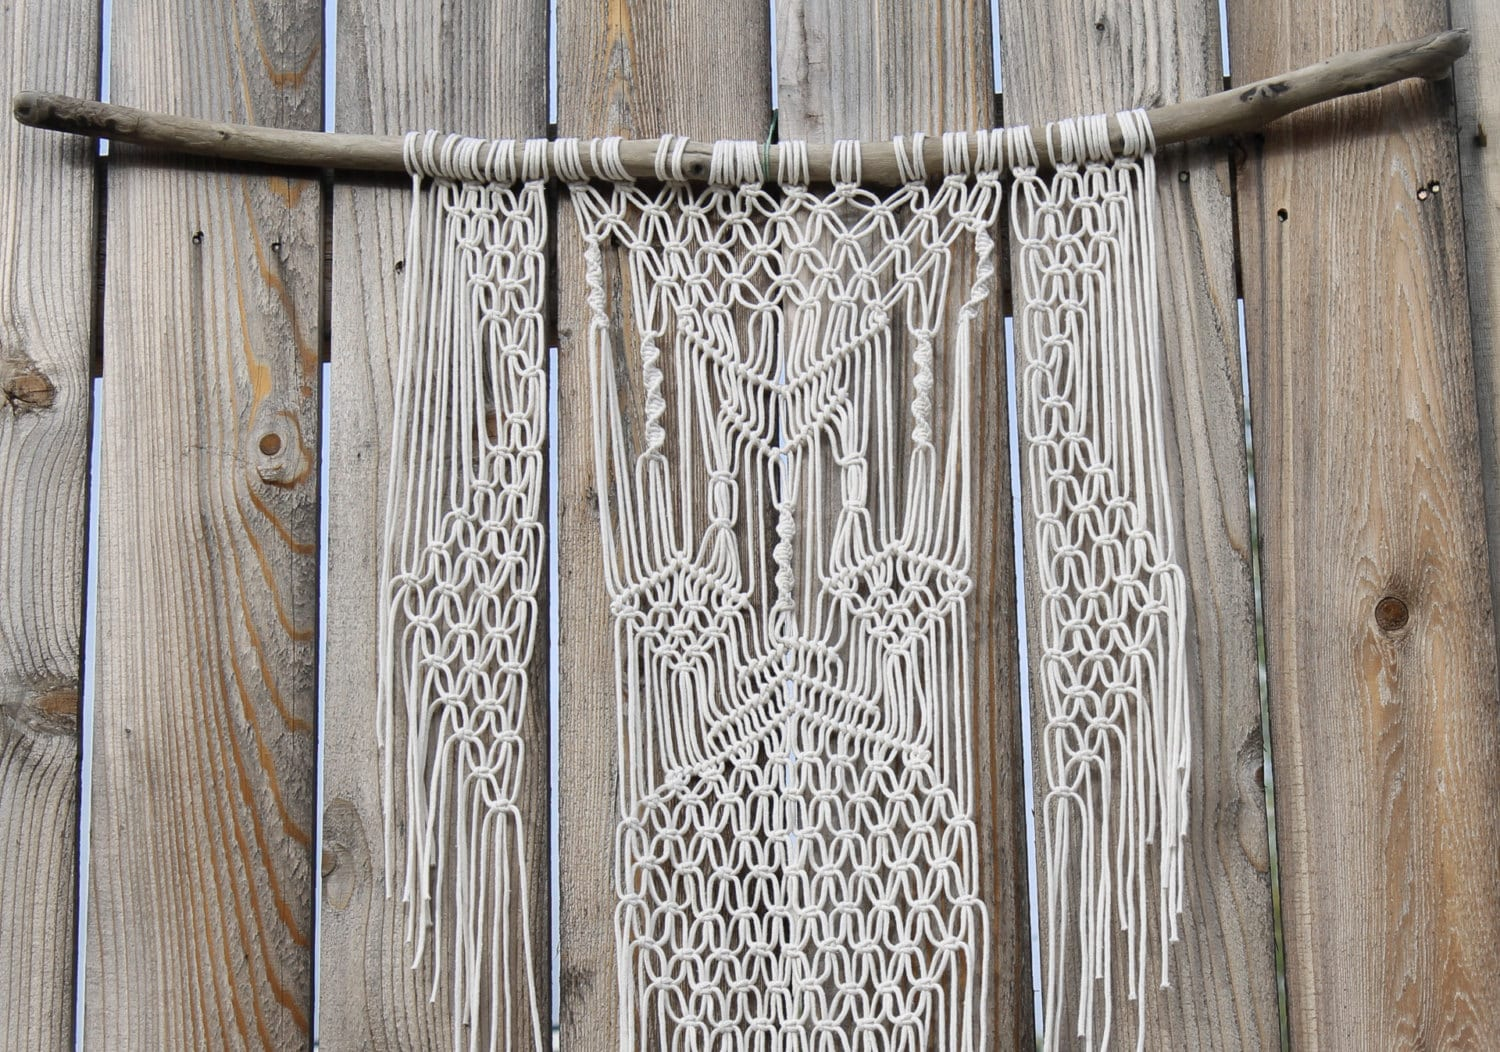 Driftwood Wall Hanging macrame wall hanging on driftwood